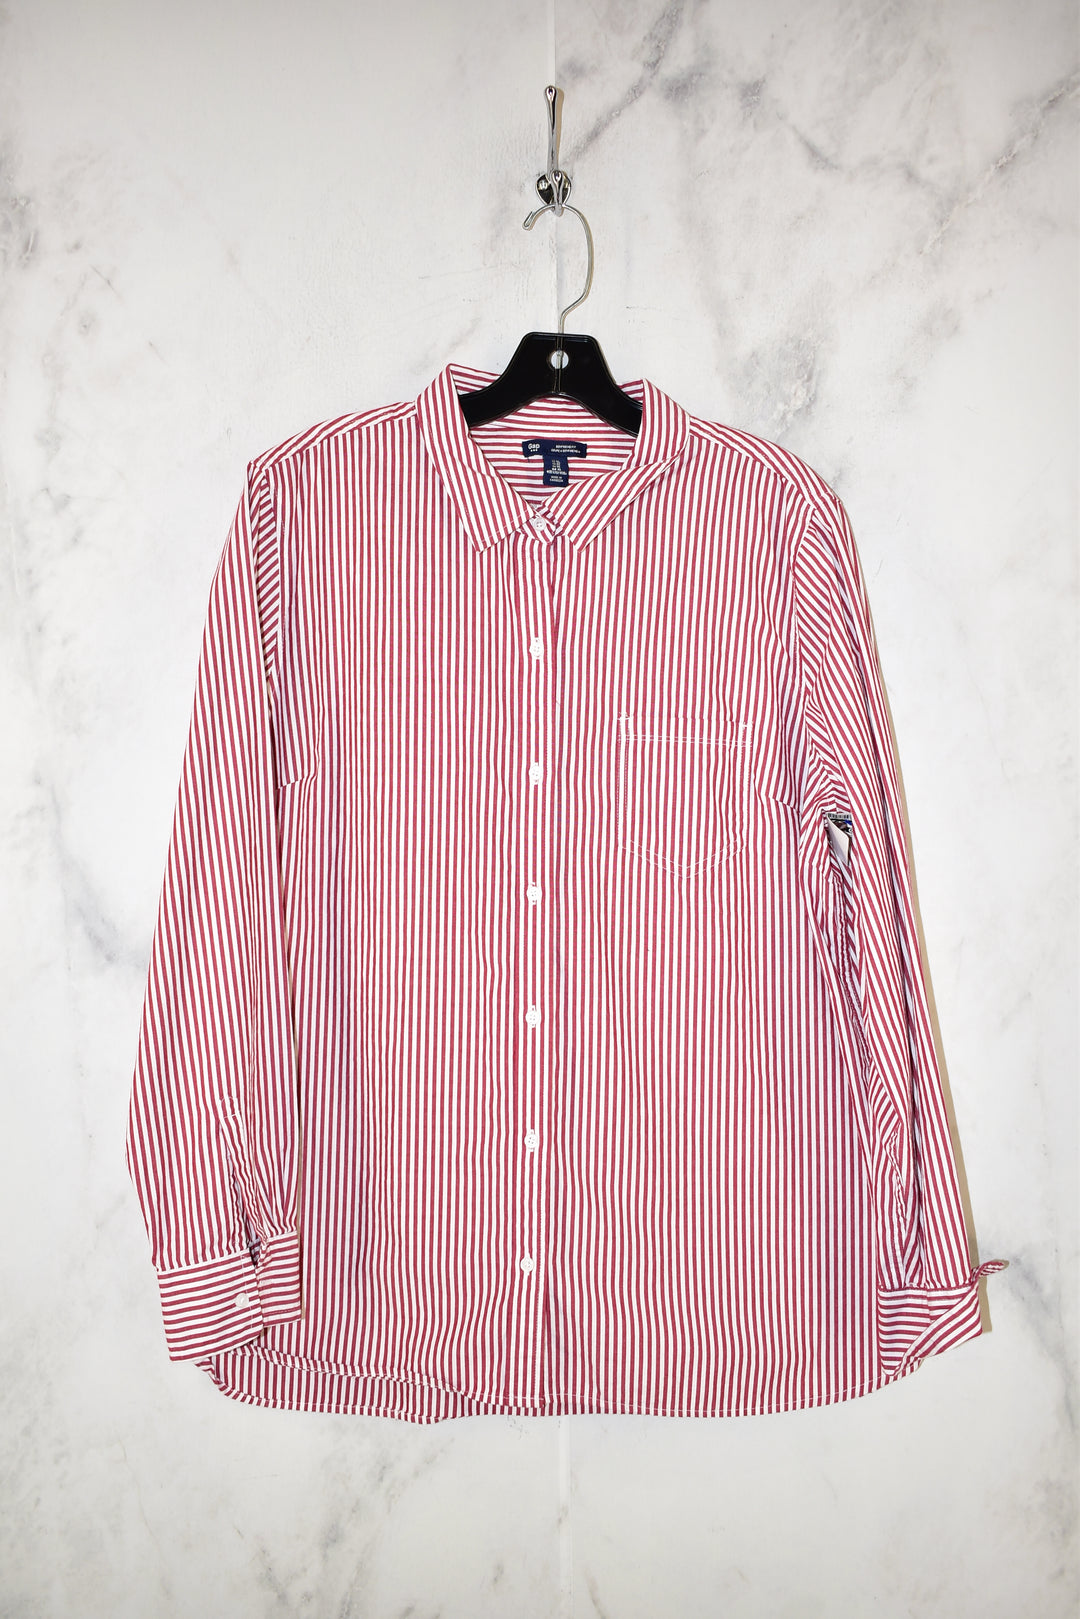 Primary Photo - BRAND: GAP <BR>STYLE: TOP LONG SLEEVE <BR>COLOR: STRIPED <BR>SIZE: XL <BR>SKU: 186-186205-550